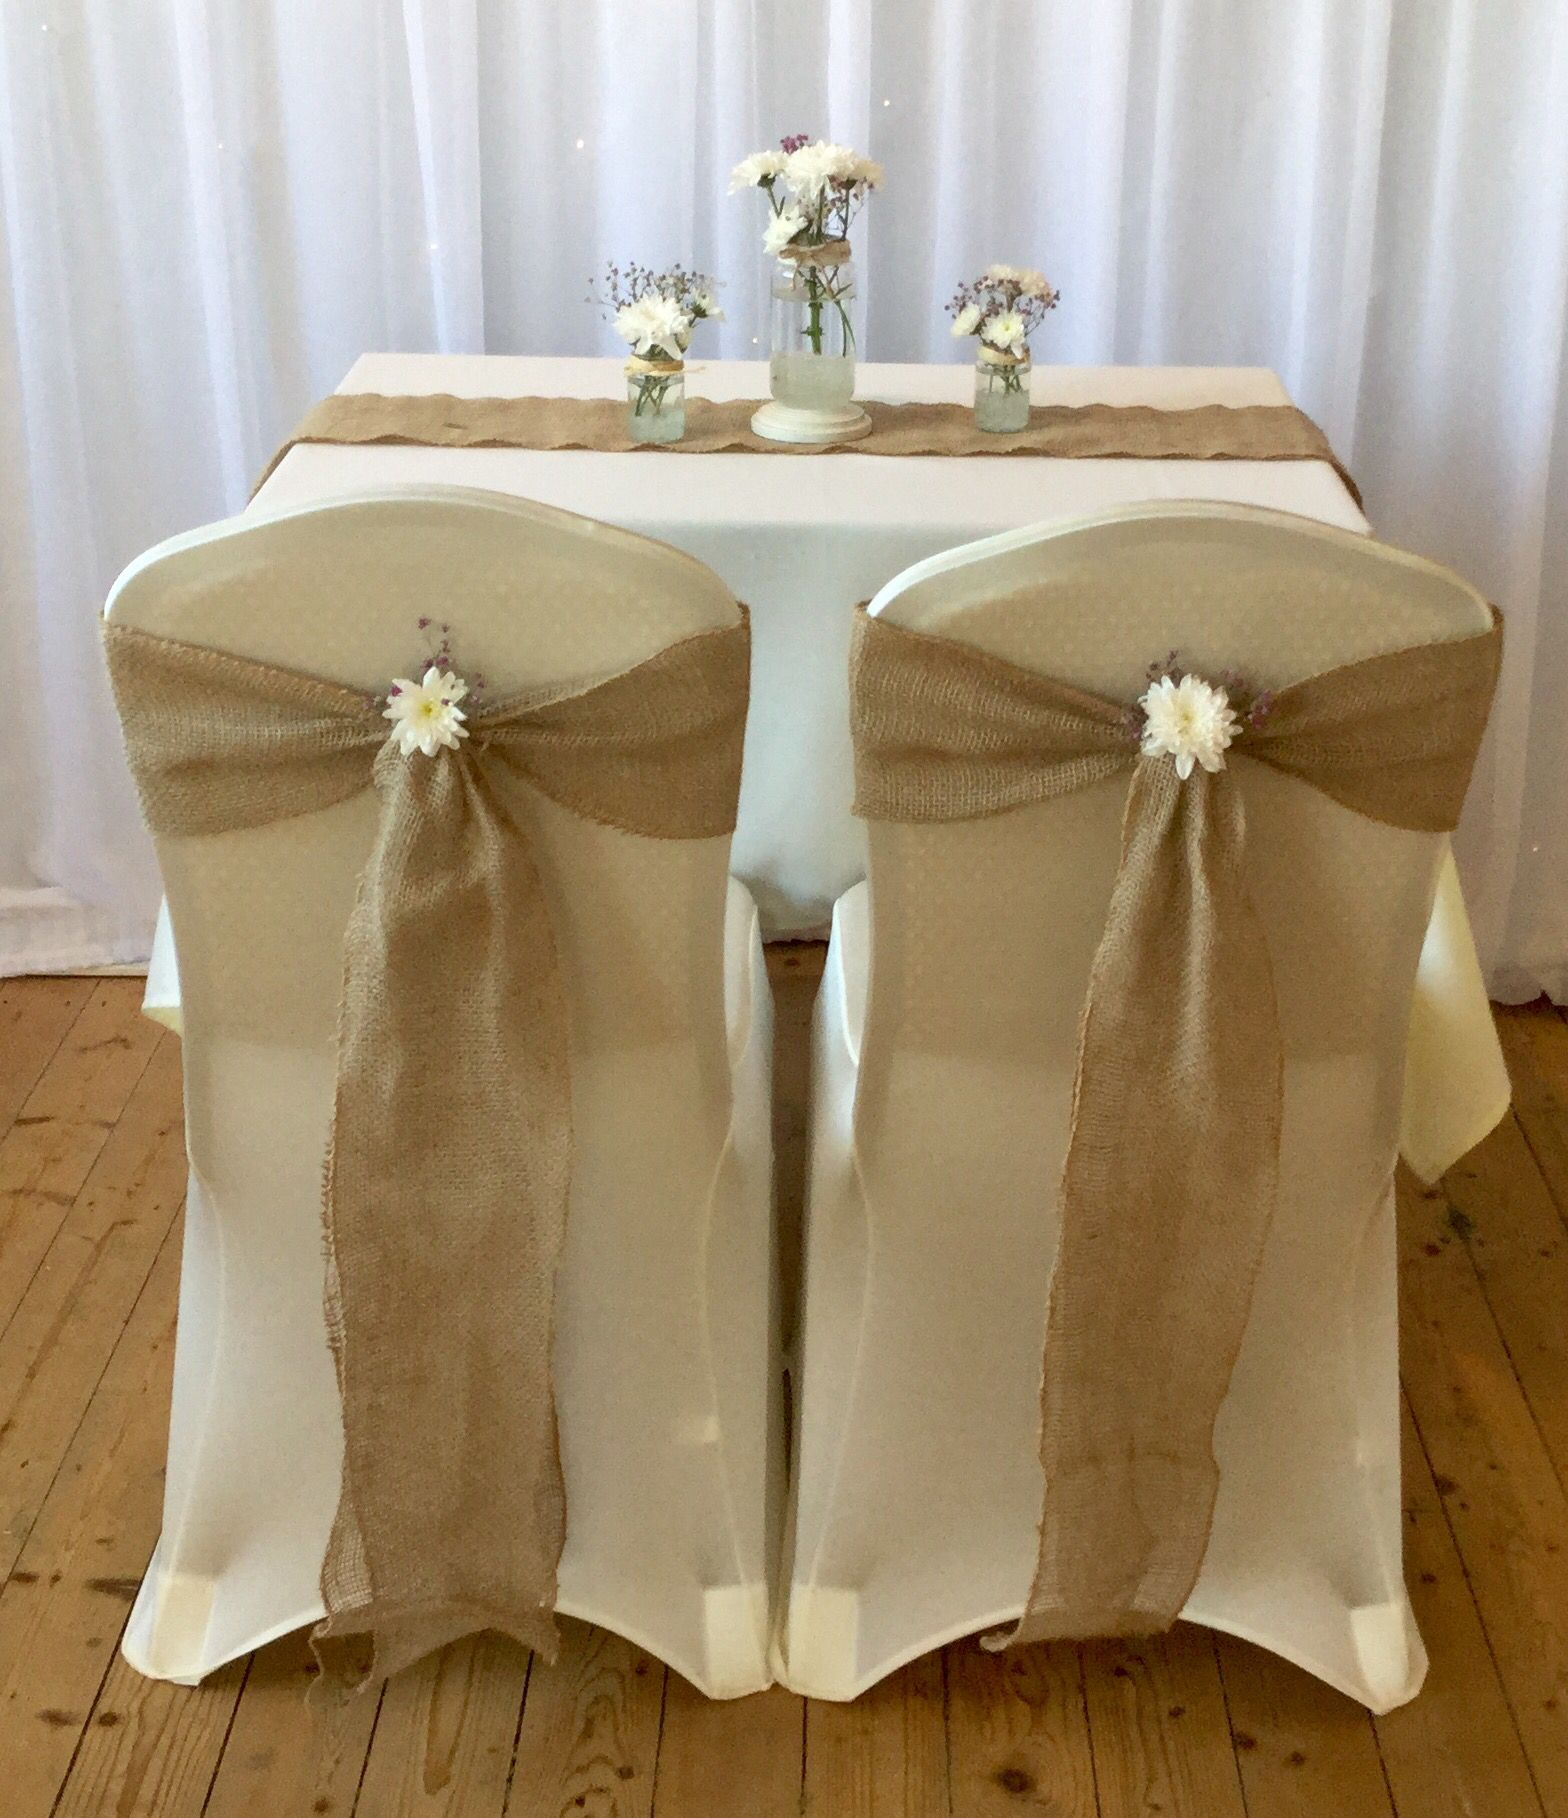 These Beautiful Ivory Chair Covers Being Complimented With Hessian Sashes And Flowers To Give A Rustic Sim Chair Covers Wedding Wedding Ceiling Wedding Chairs